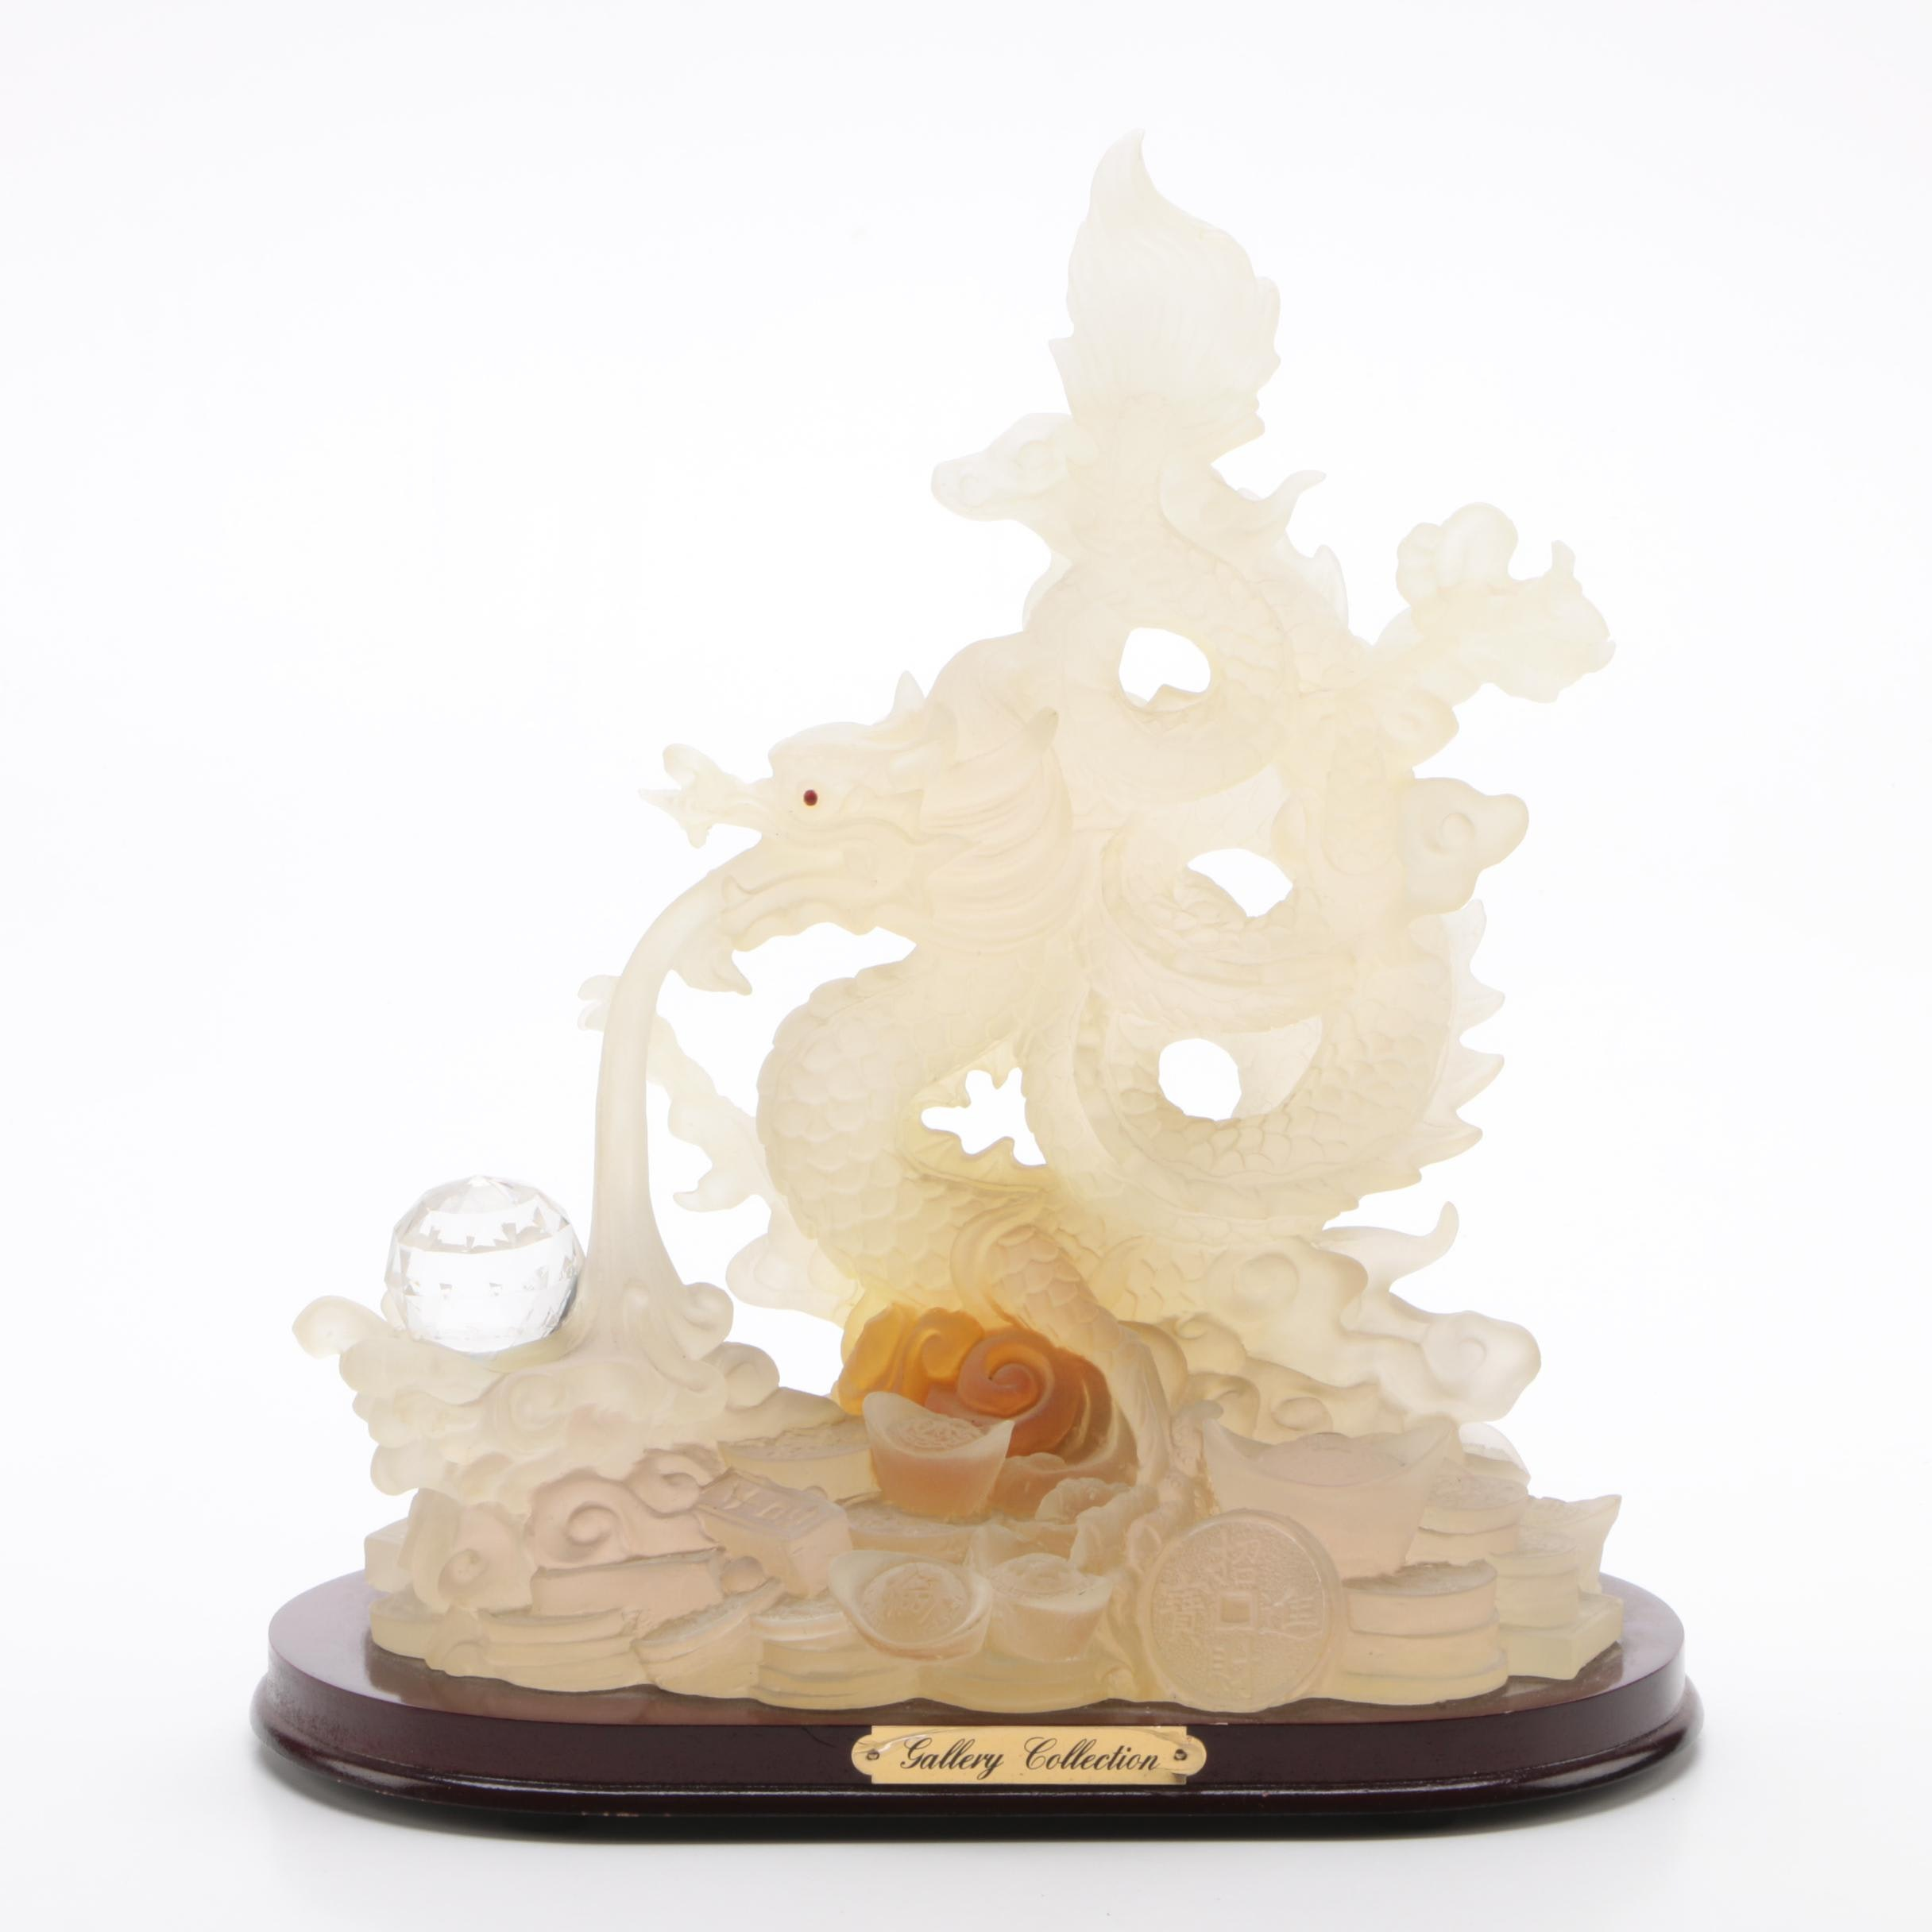 Gallery Collection Chinese Resin Dragon Sculpture